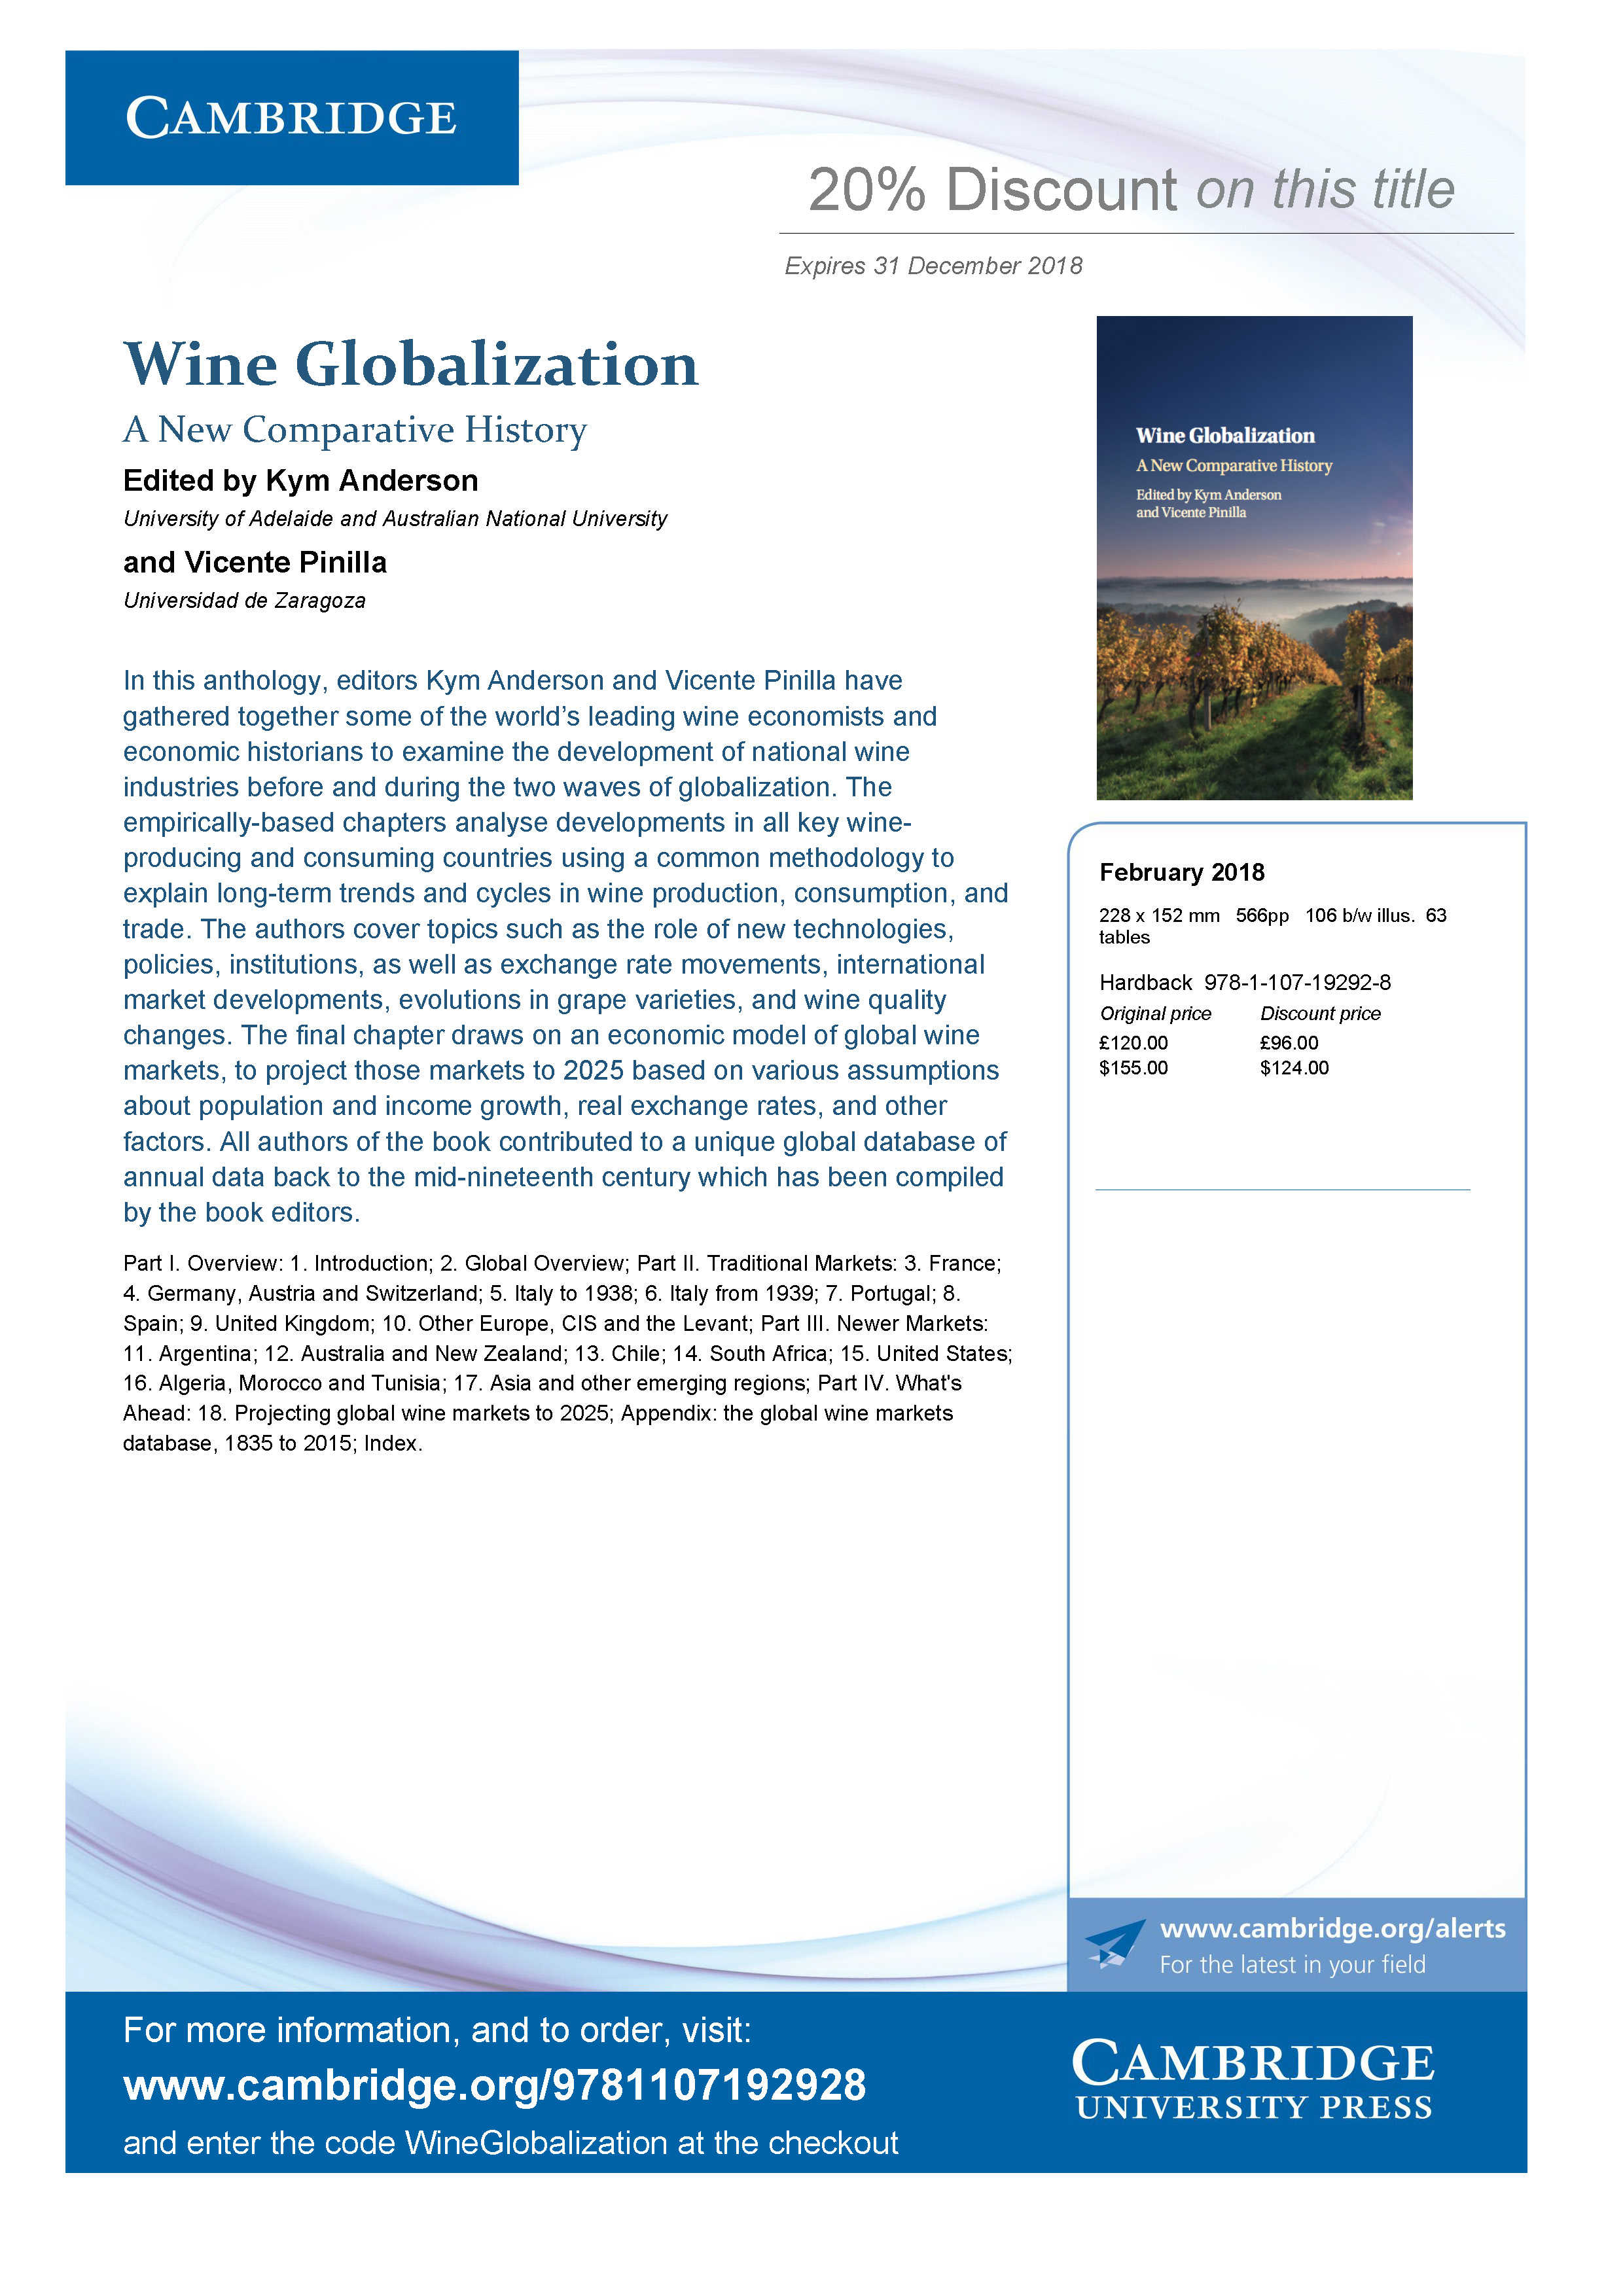 Flier_Wine Globalization CUP book 0218